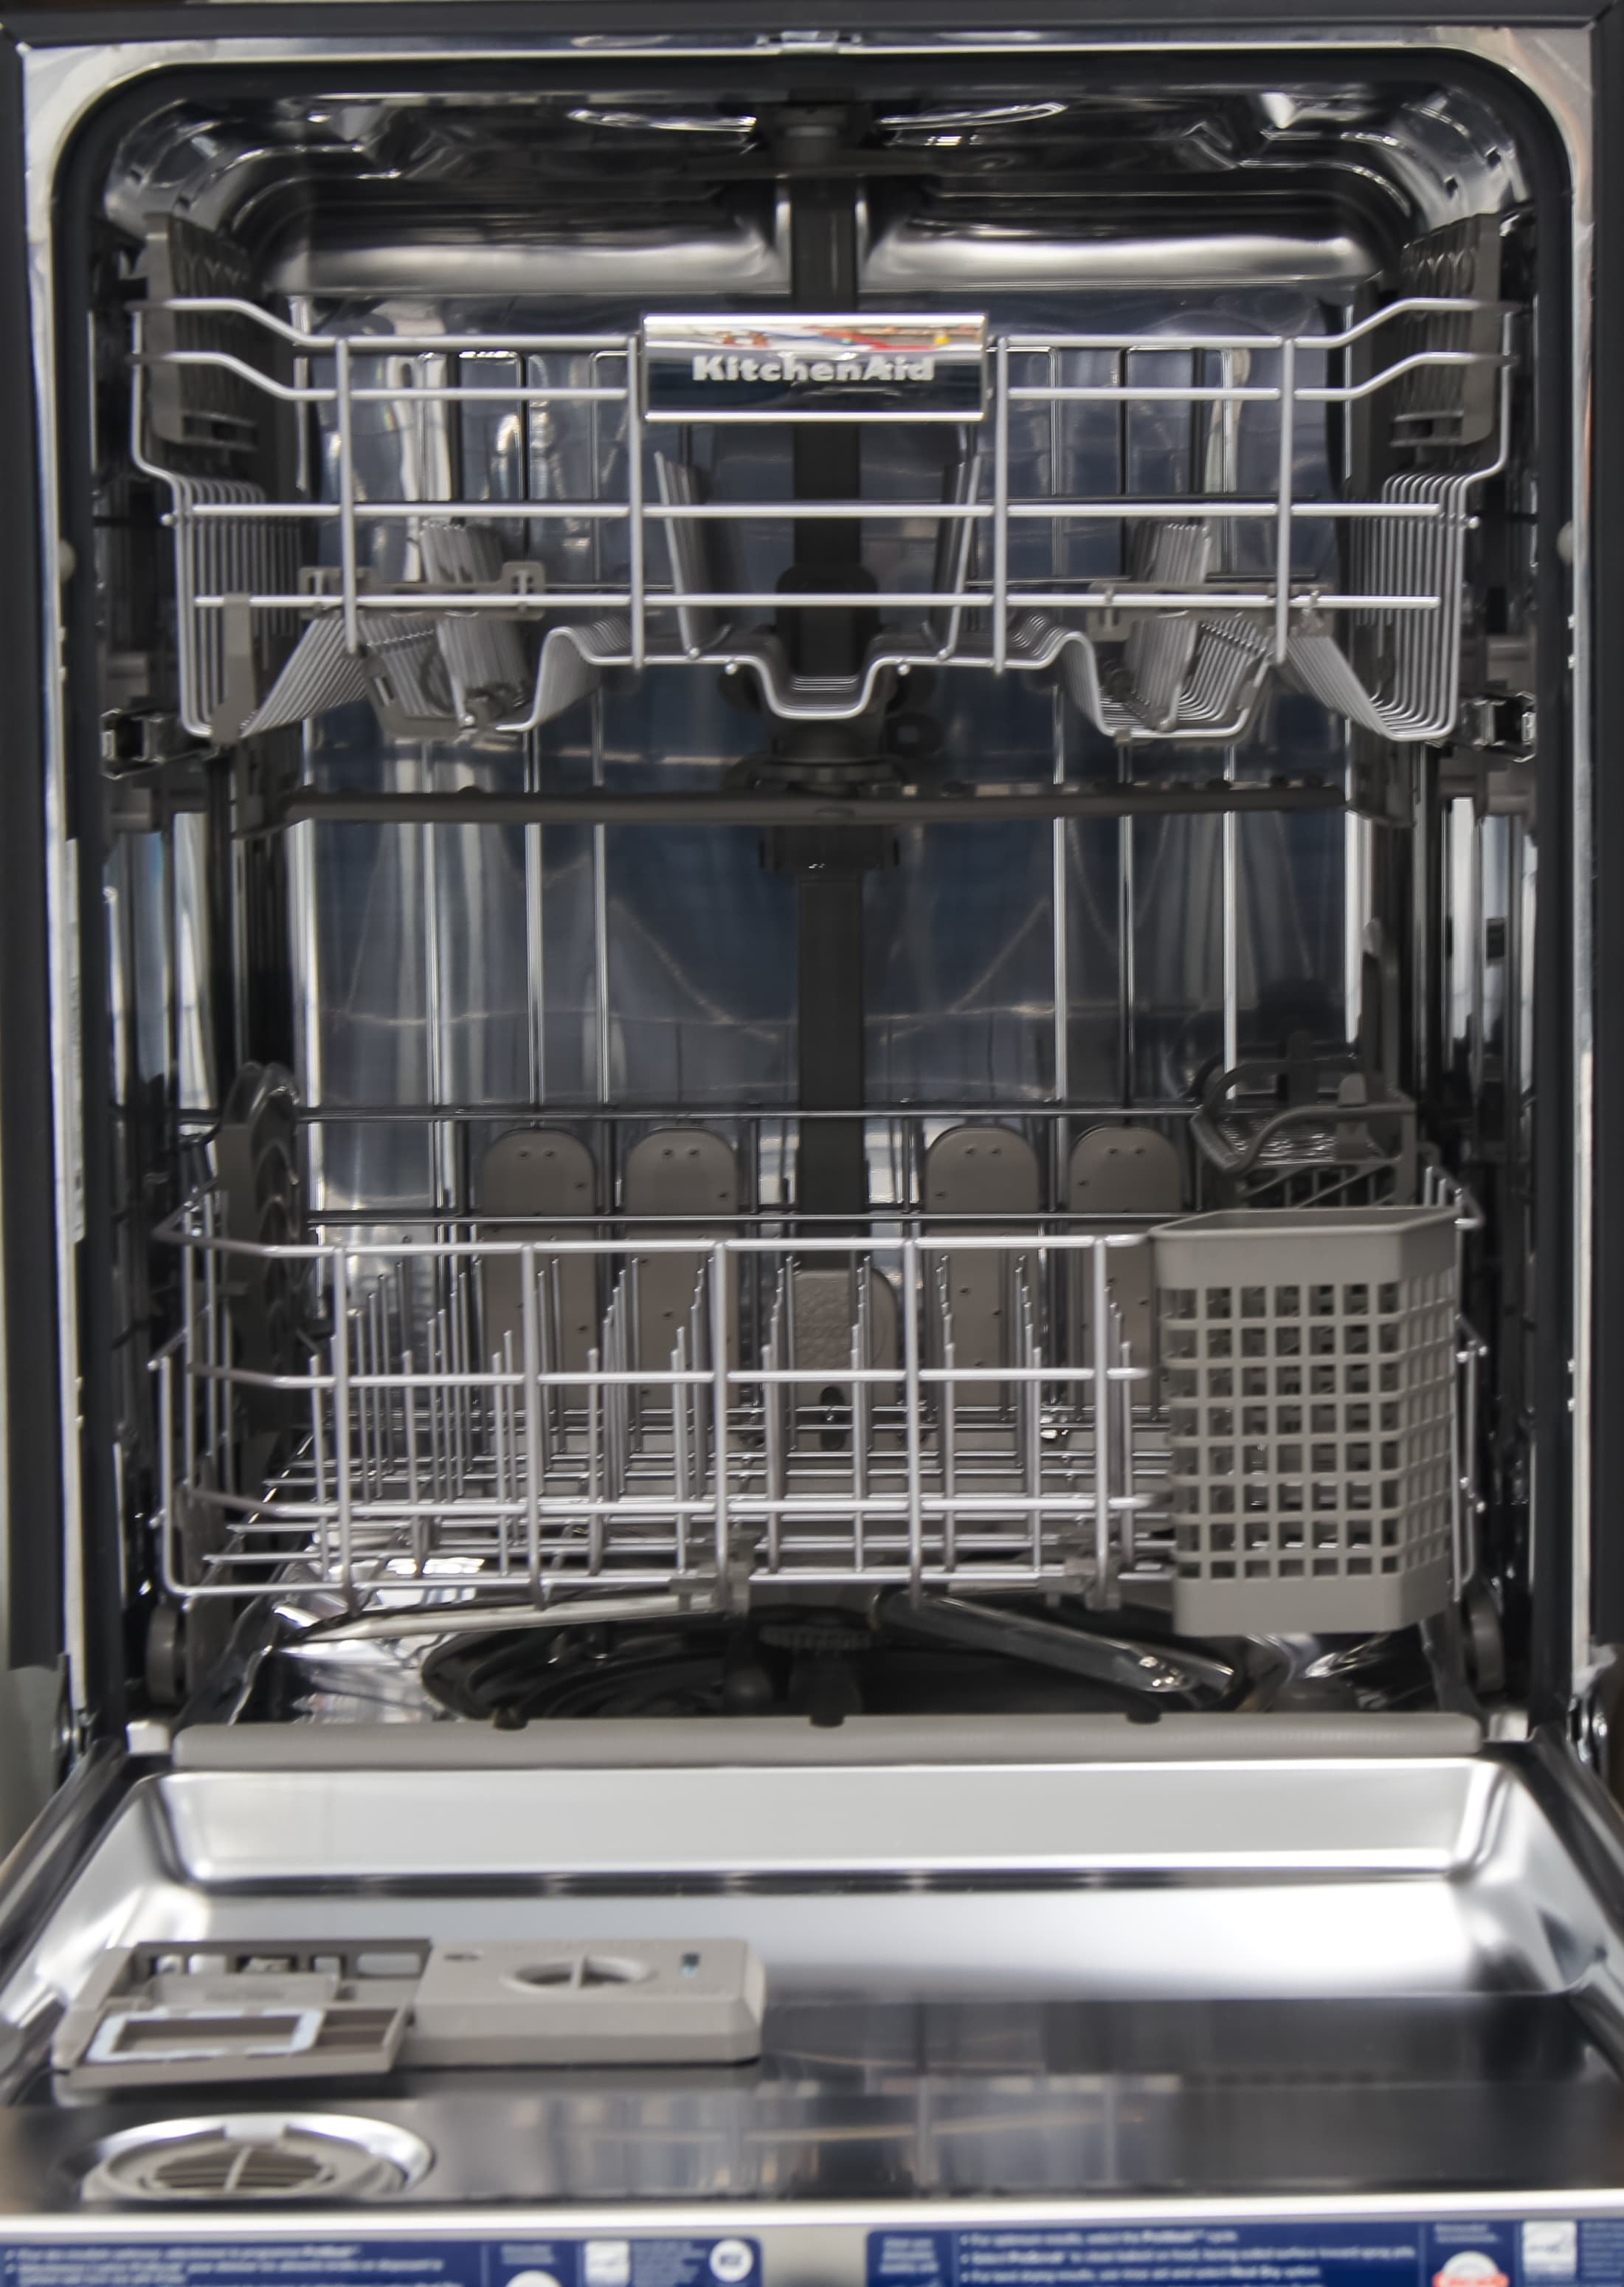 Kitchenaid Architect Series Ii Kdtm354dss Dishwasher